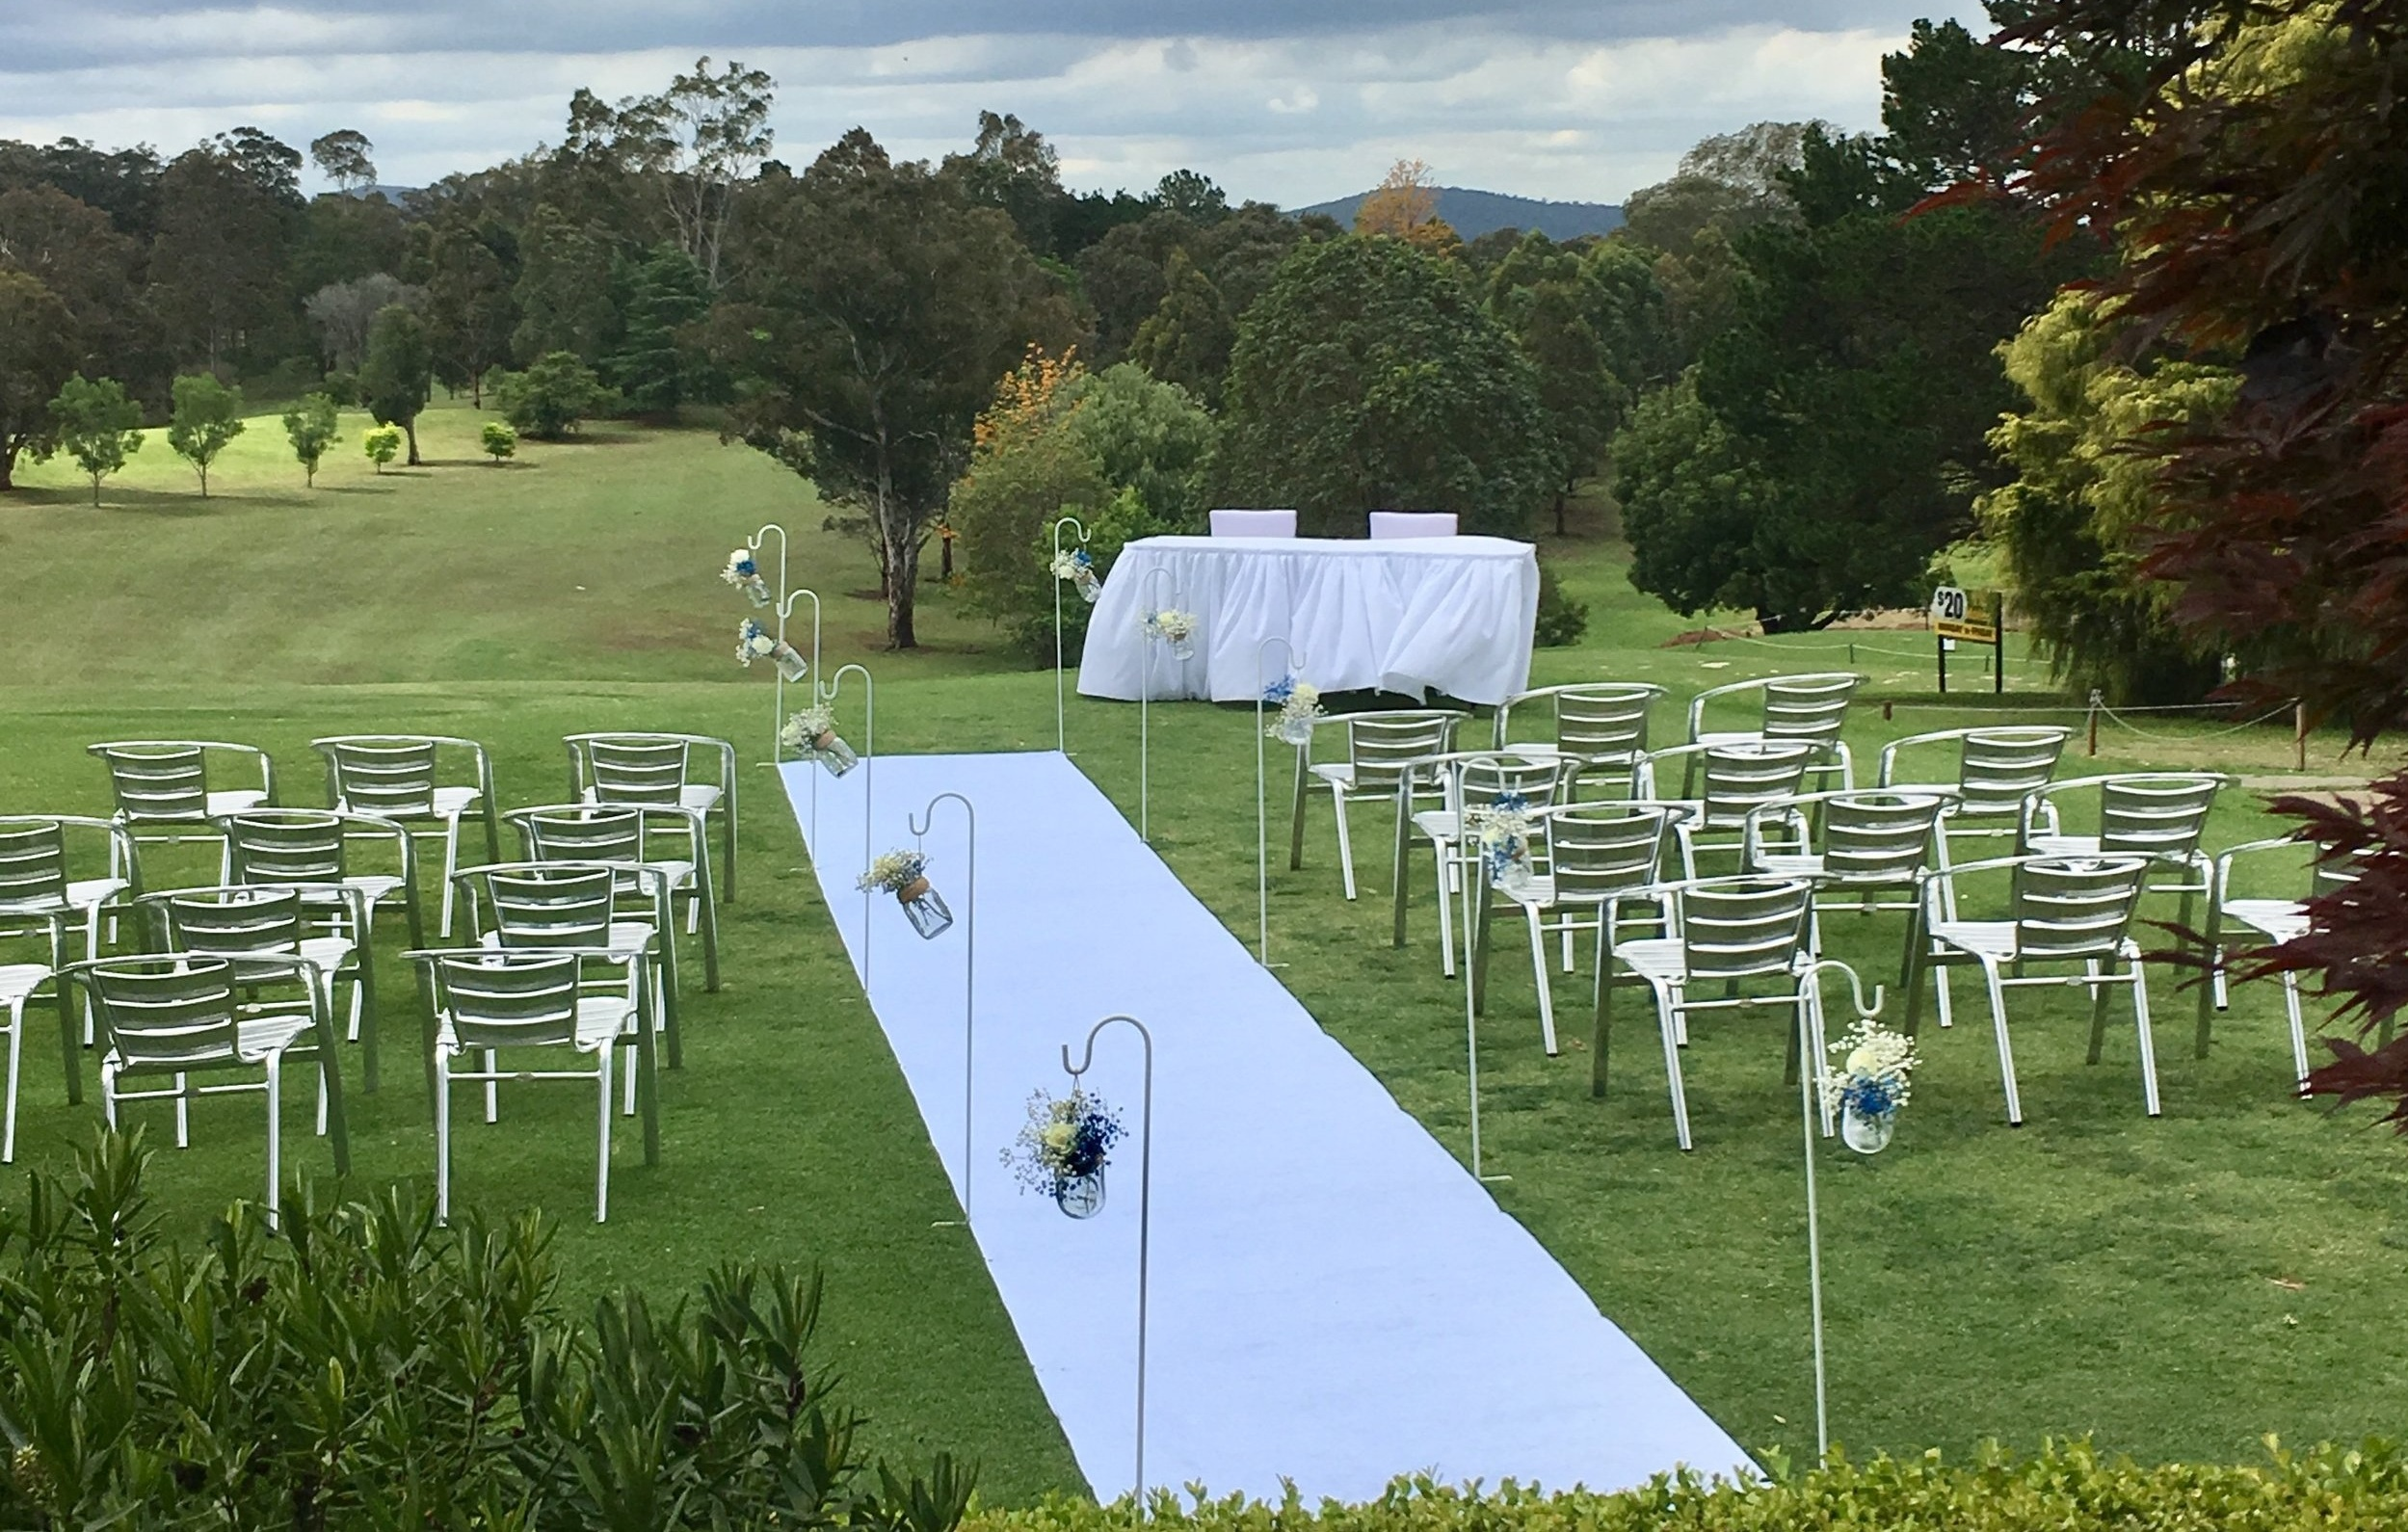 Weddings - Celebrate your reception overlooking our beautiful course with its breathtaking mountain backdrop.Our chef will be happy to be consulted to develop a menu to suit your taste and budget.Then have your photos taken on our beautiful course with its tree lined fairways.